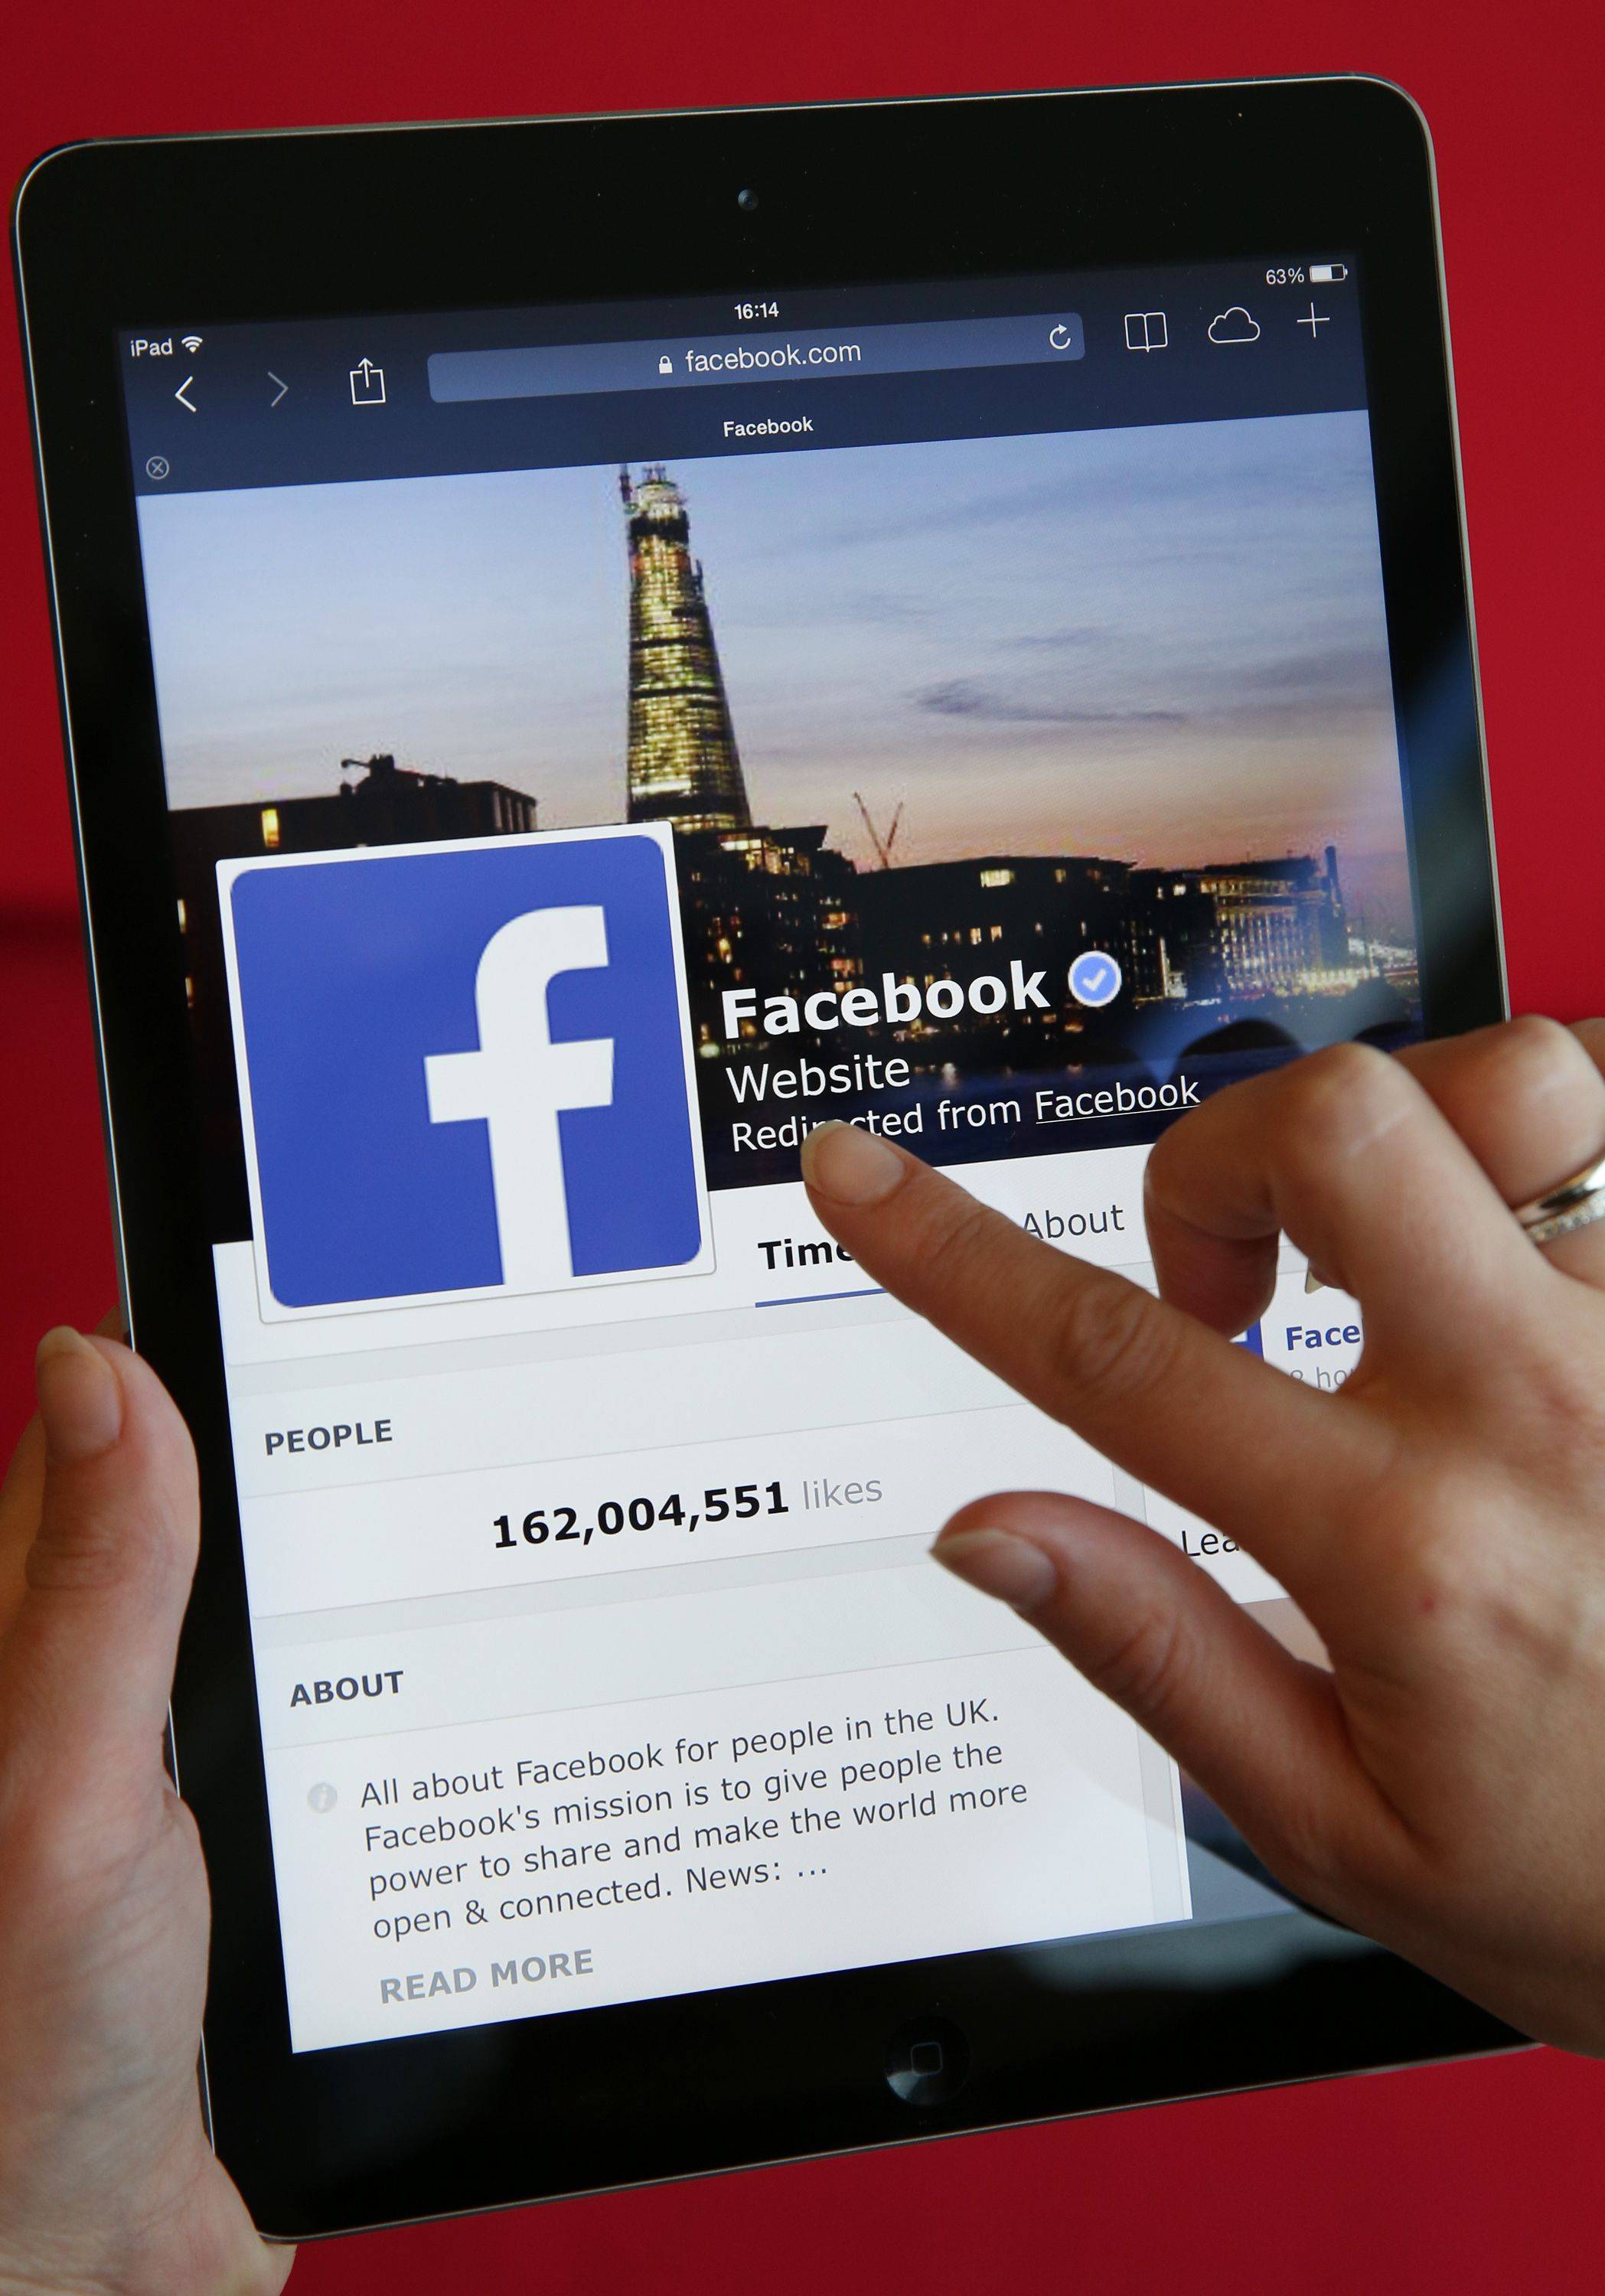 If You Aren't Removing Facebook Apps, You Could Be In for a Big (Bad) Surprise